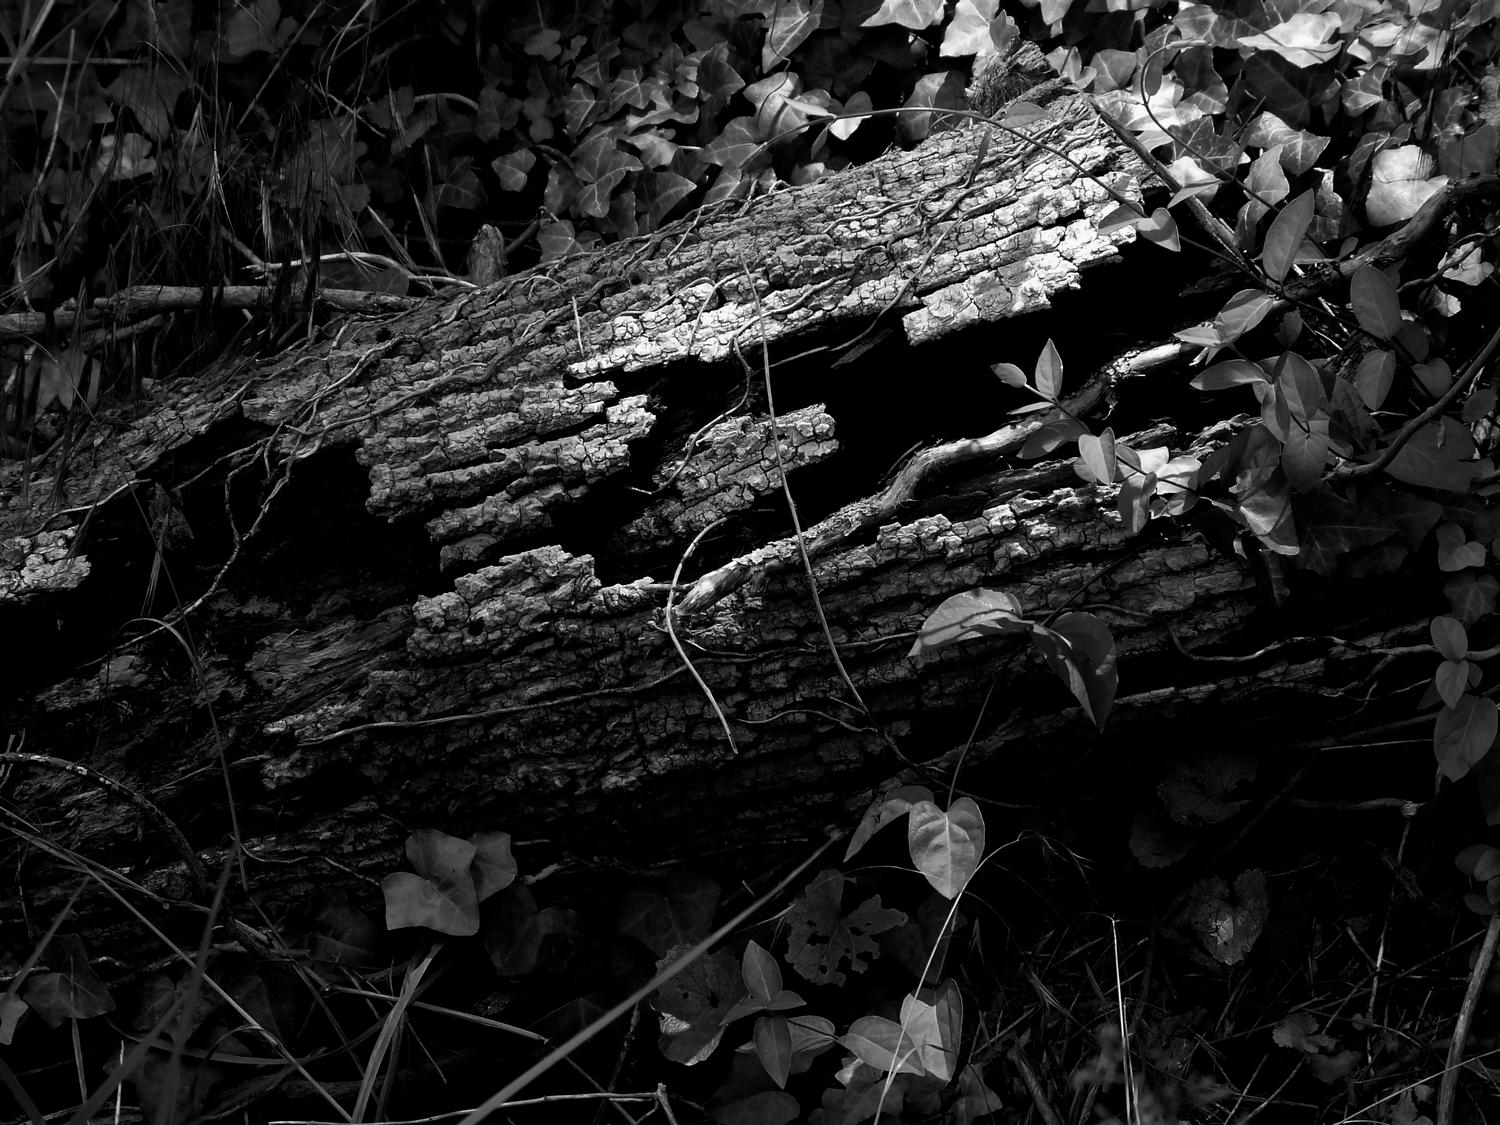 - Here's the old log in dynamic black and white - Panasonic DMC-FZ18 - - art  - photography - by Tony Karp